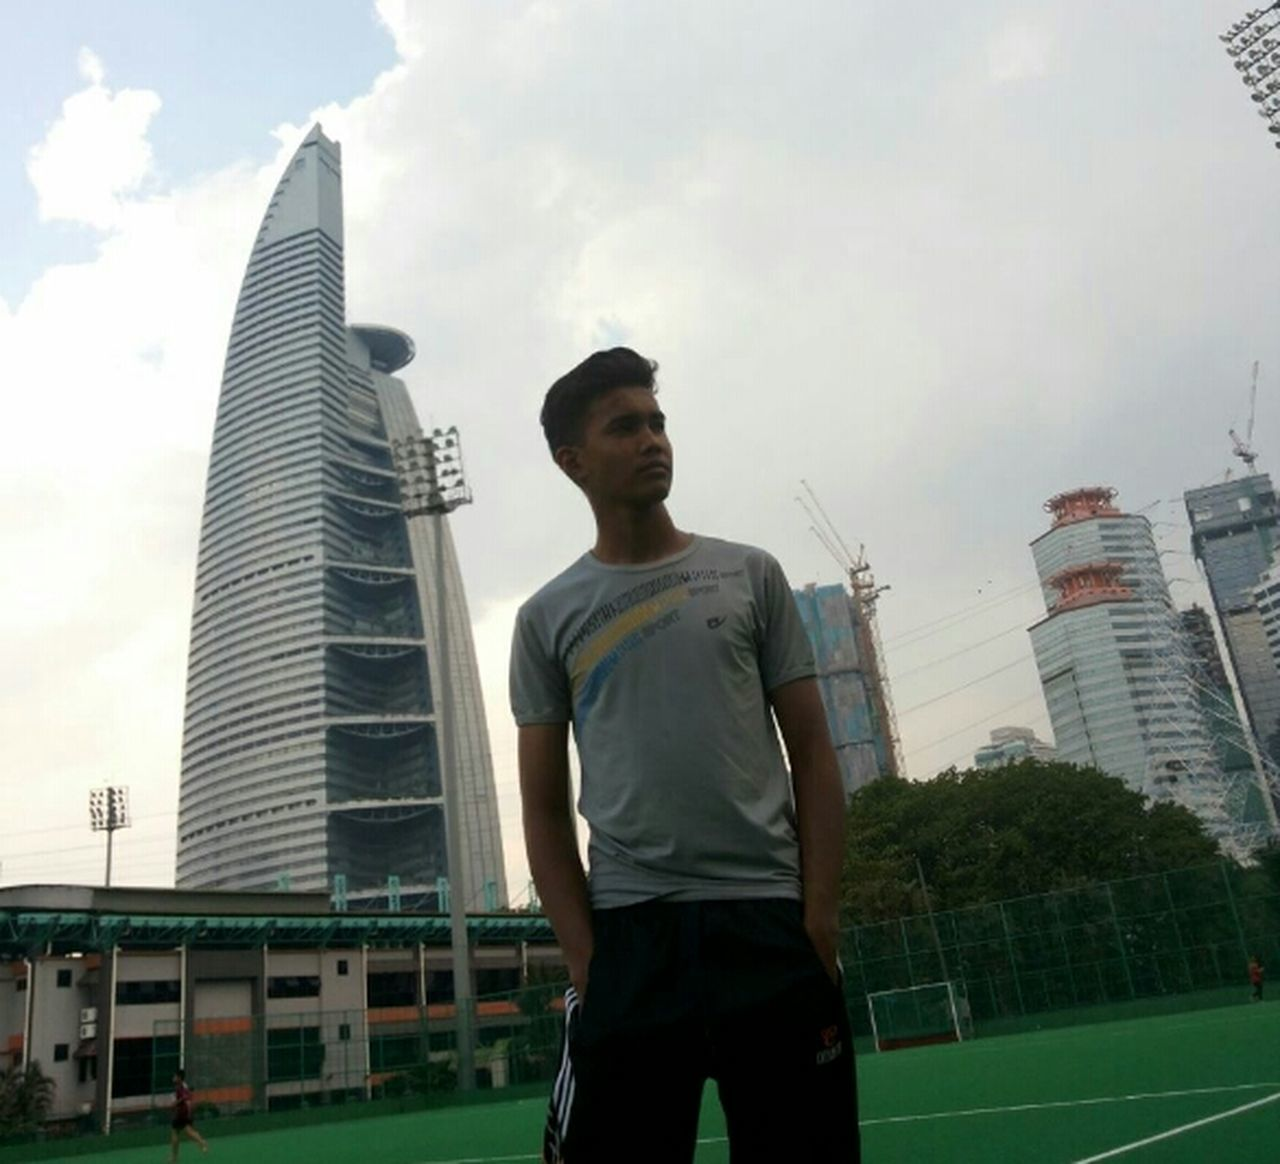 architecture, skyscraper, young adult, city, built structure, one person, casual clothing, building exterior, young men, sky, outdoors, day, low angle view, real people, standing, sport, lifestyles, men, one young man only, sportsman, one man only, only men, urban skyline, cityscape, athlete, adult, adults only, people